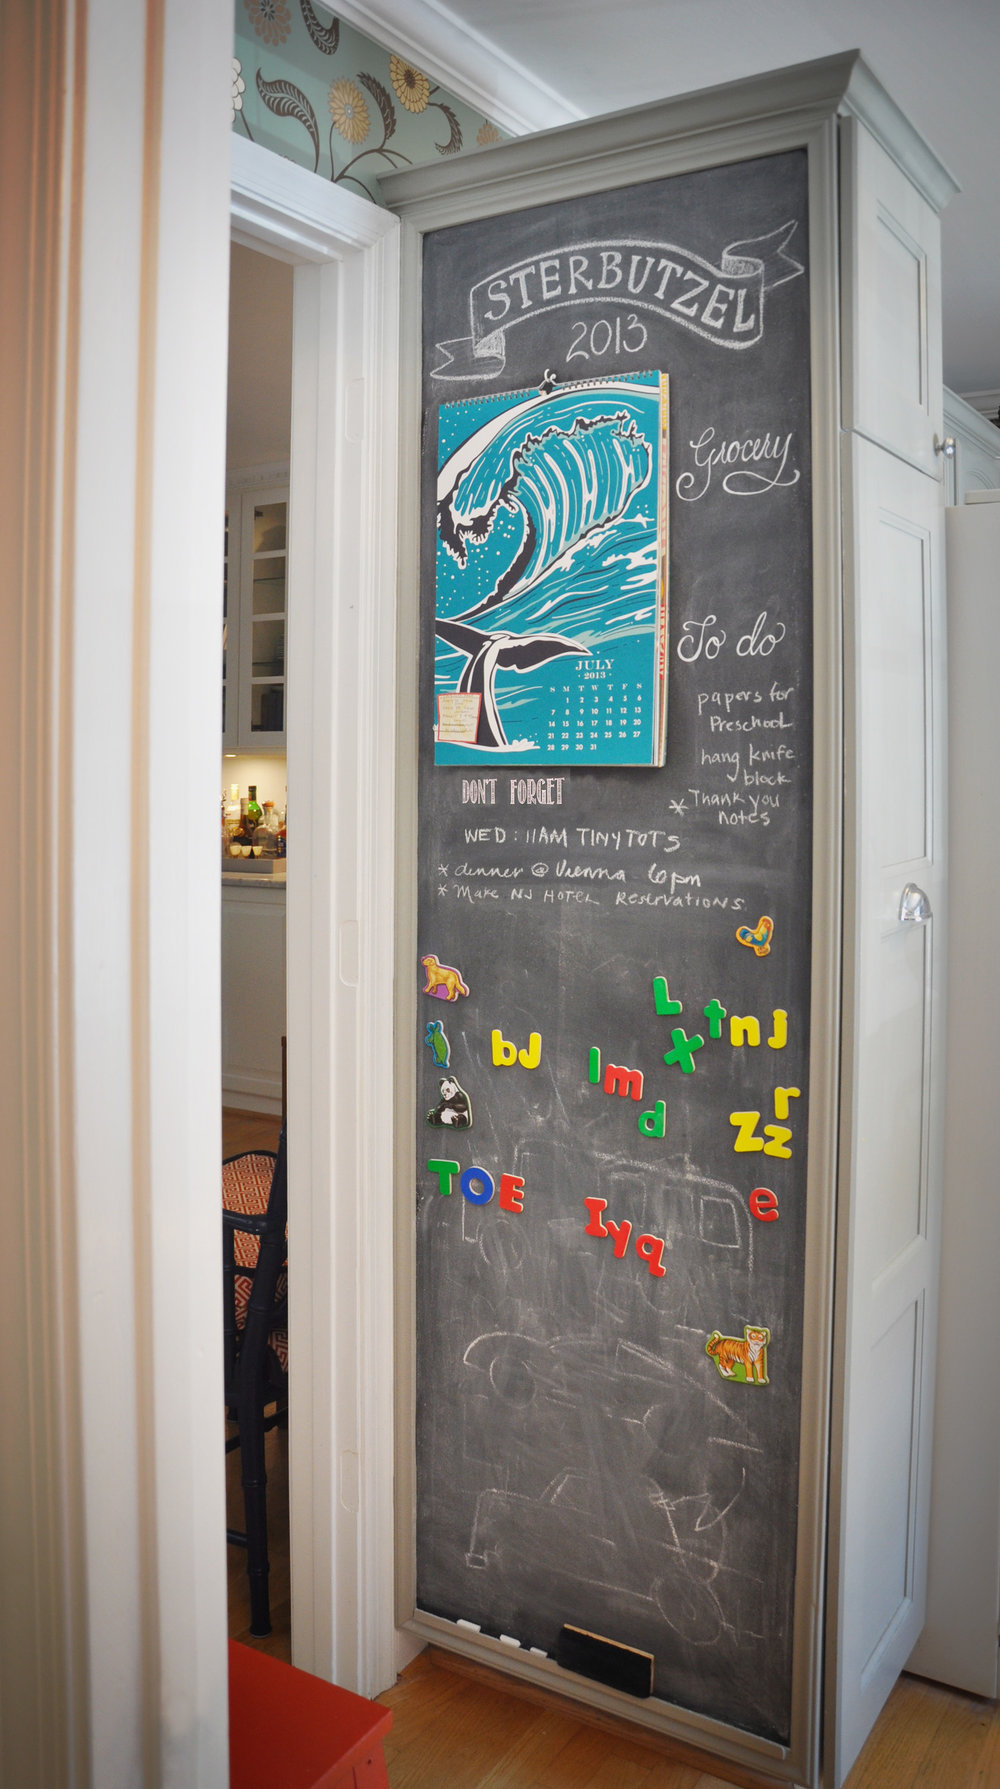 etch-projects-cottagecooking-7.jpg